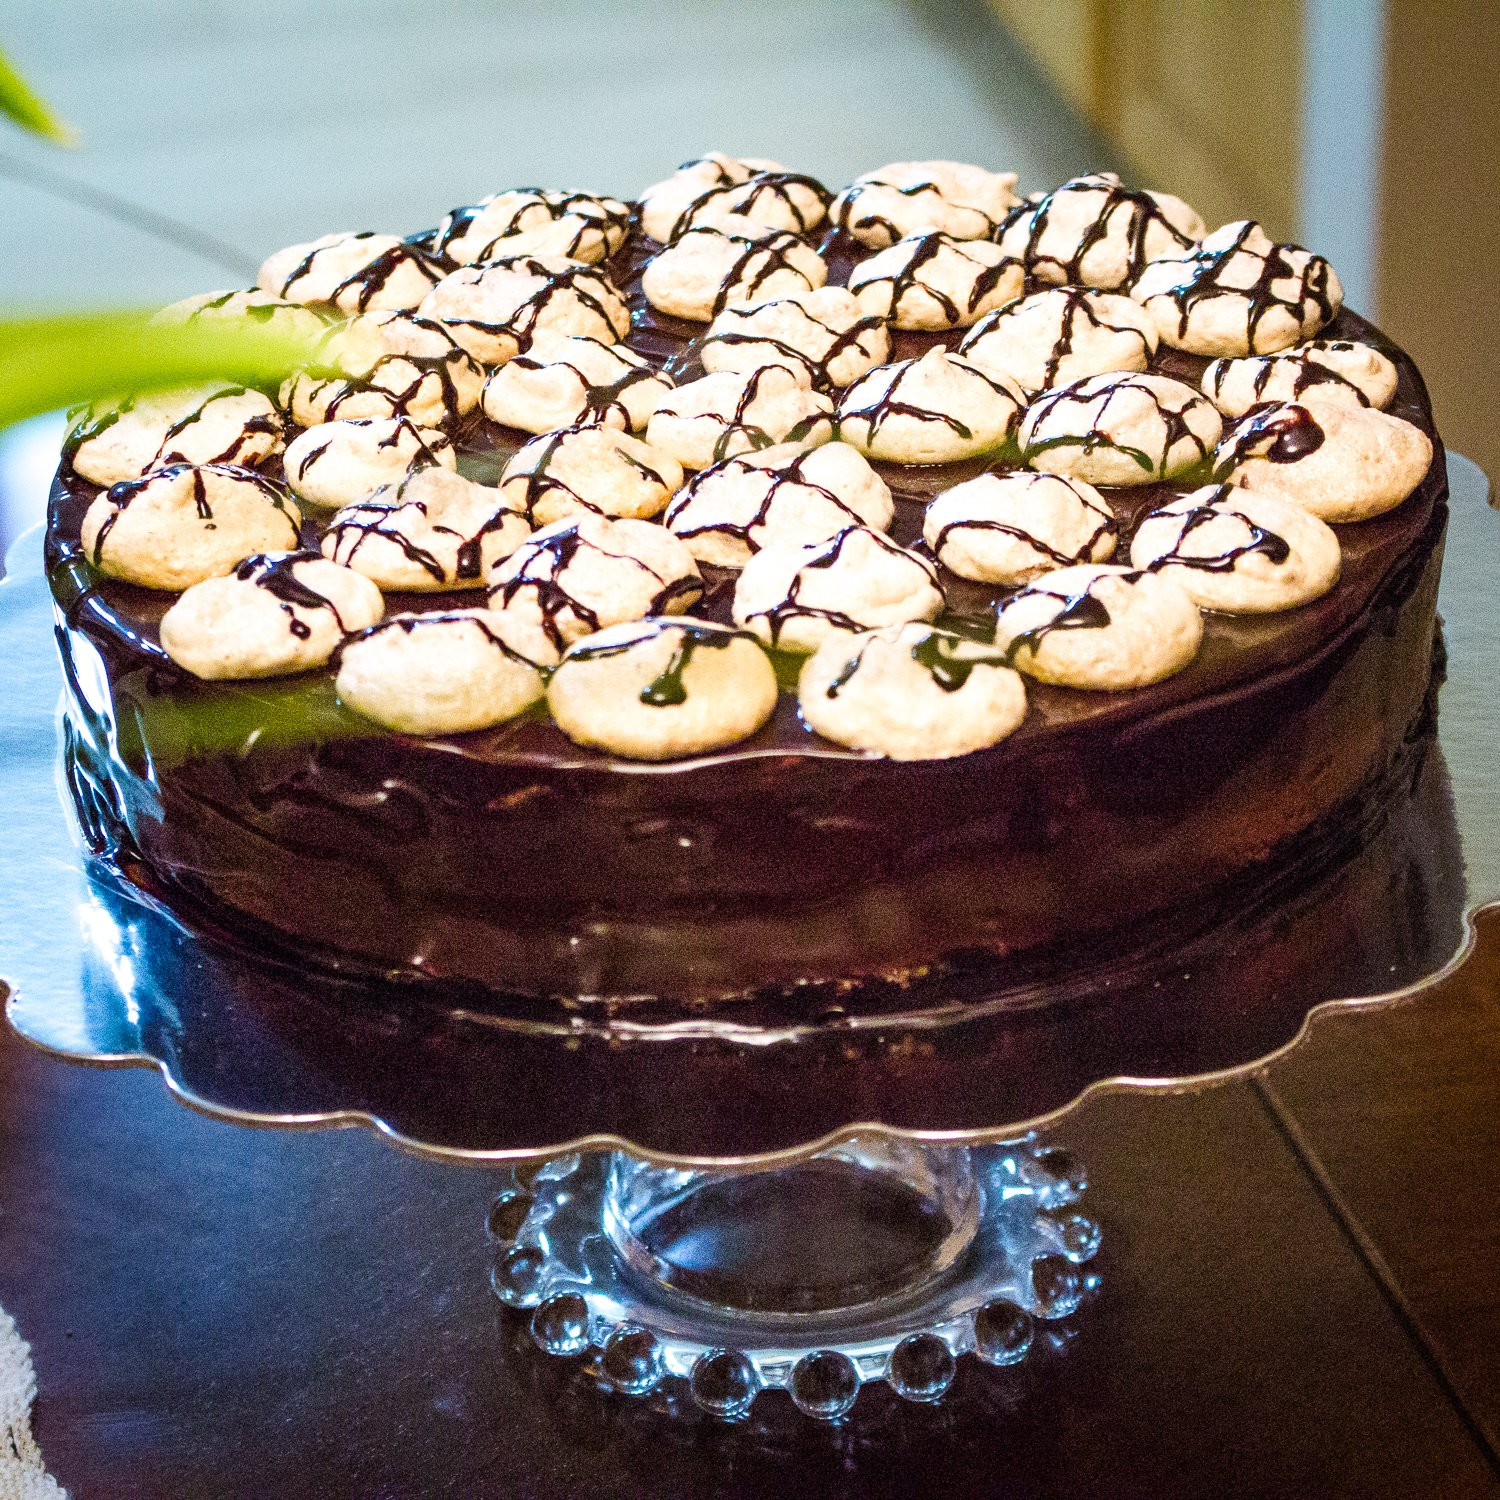 This Walnut Meringue Cake With Dark Chocolate Mousse is a decadent, elegant and delicious cake that will win your heart for ever. This cake is called an entremet and it is one of the best cakes I ever had. The layers of meringue and chocolate mousse are easy to make and the results are fabulous! Enjoy!